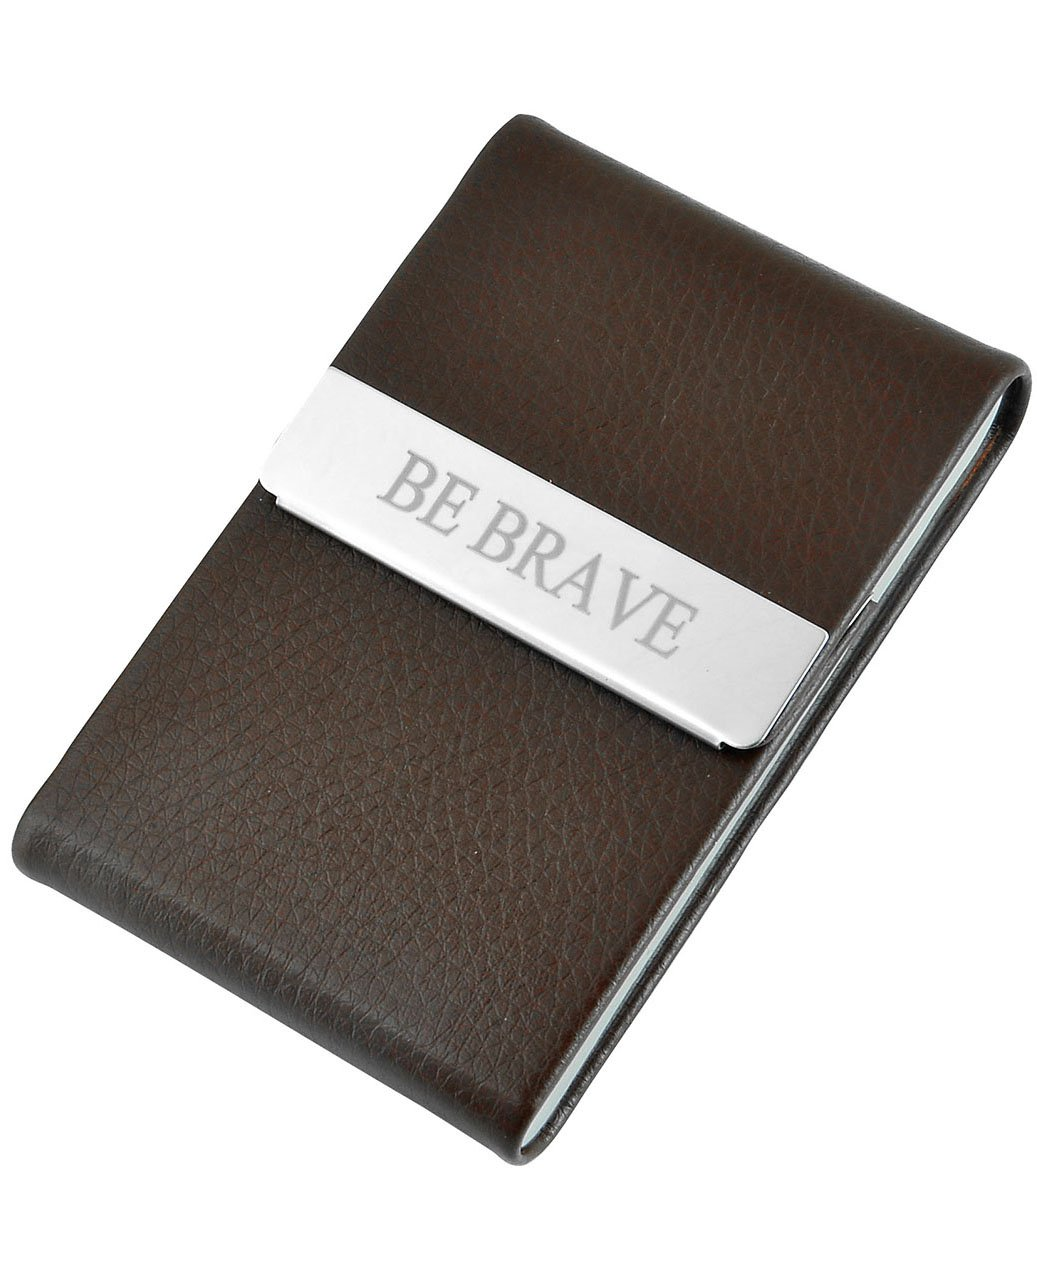 Ayliss Custom Engraved Business Card Holder Personalized Text Card Case,Brown-customed